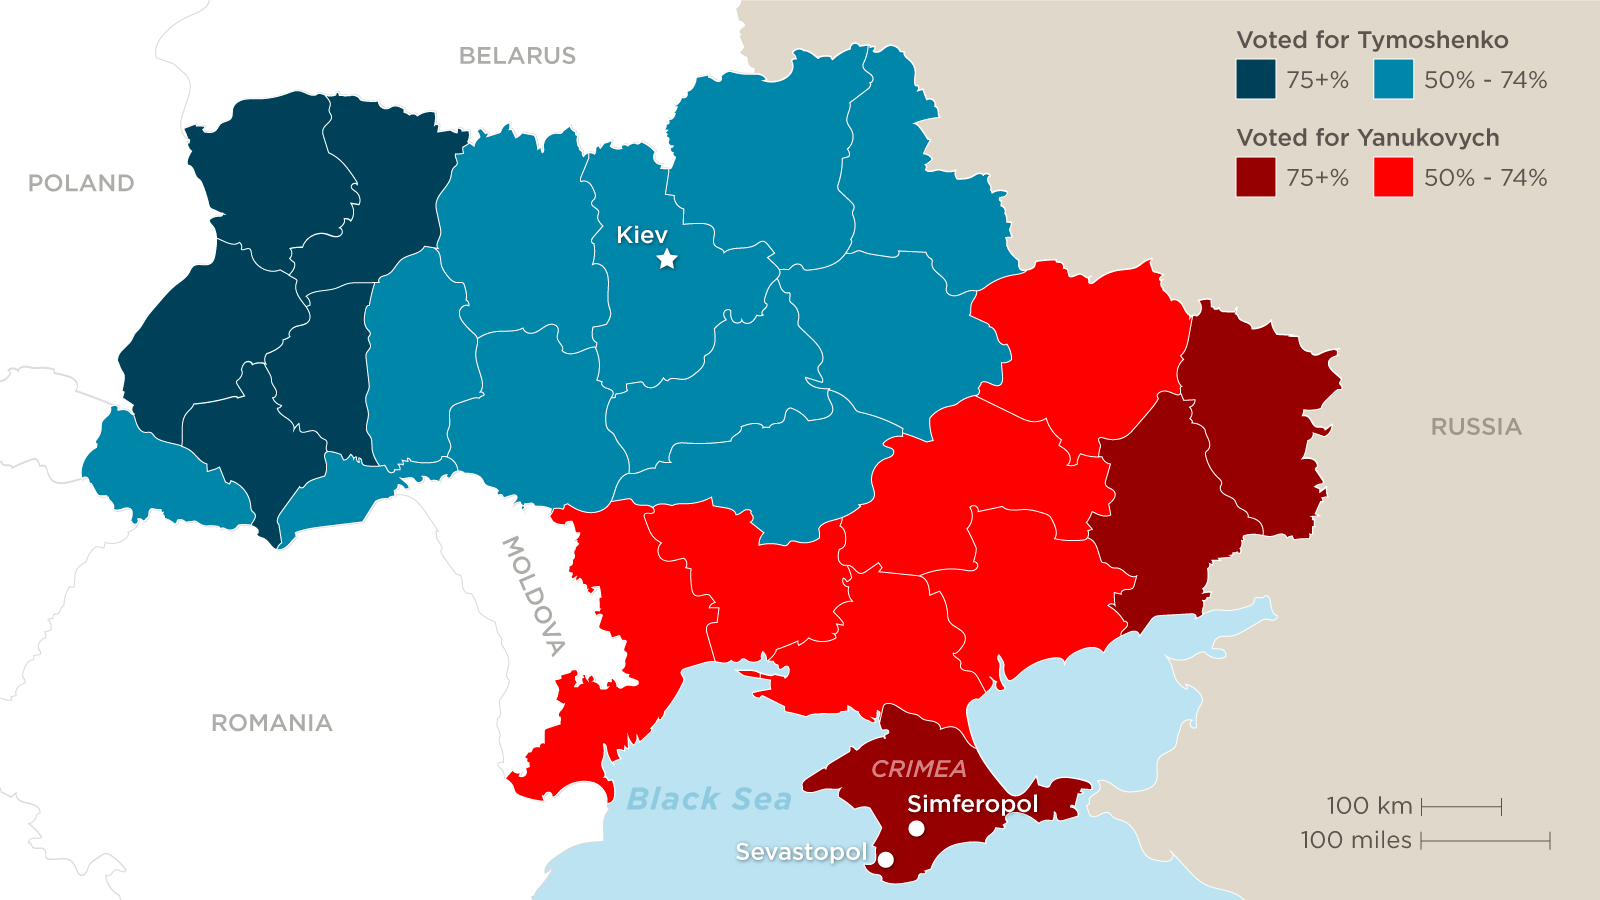 ukraine_map_region_vote.jpg